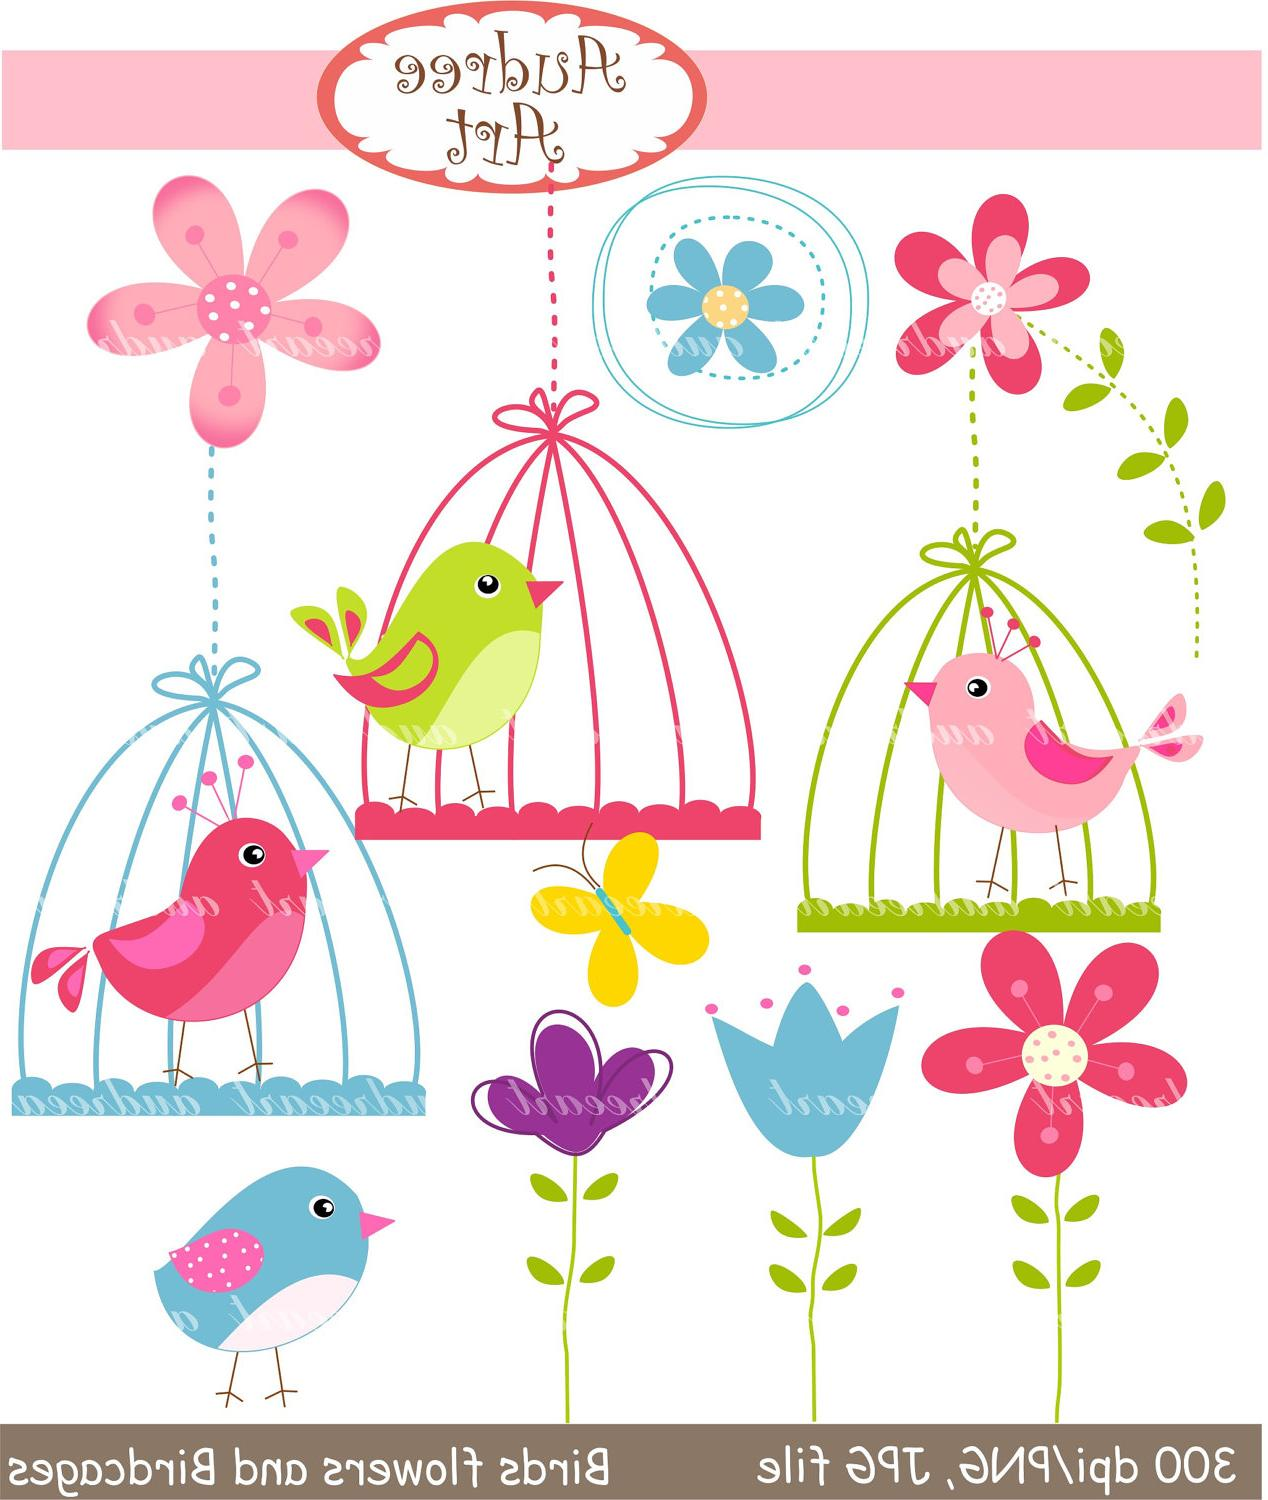 Clip art birds, birds, flowers and birdcages, pink, blue,green 5402